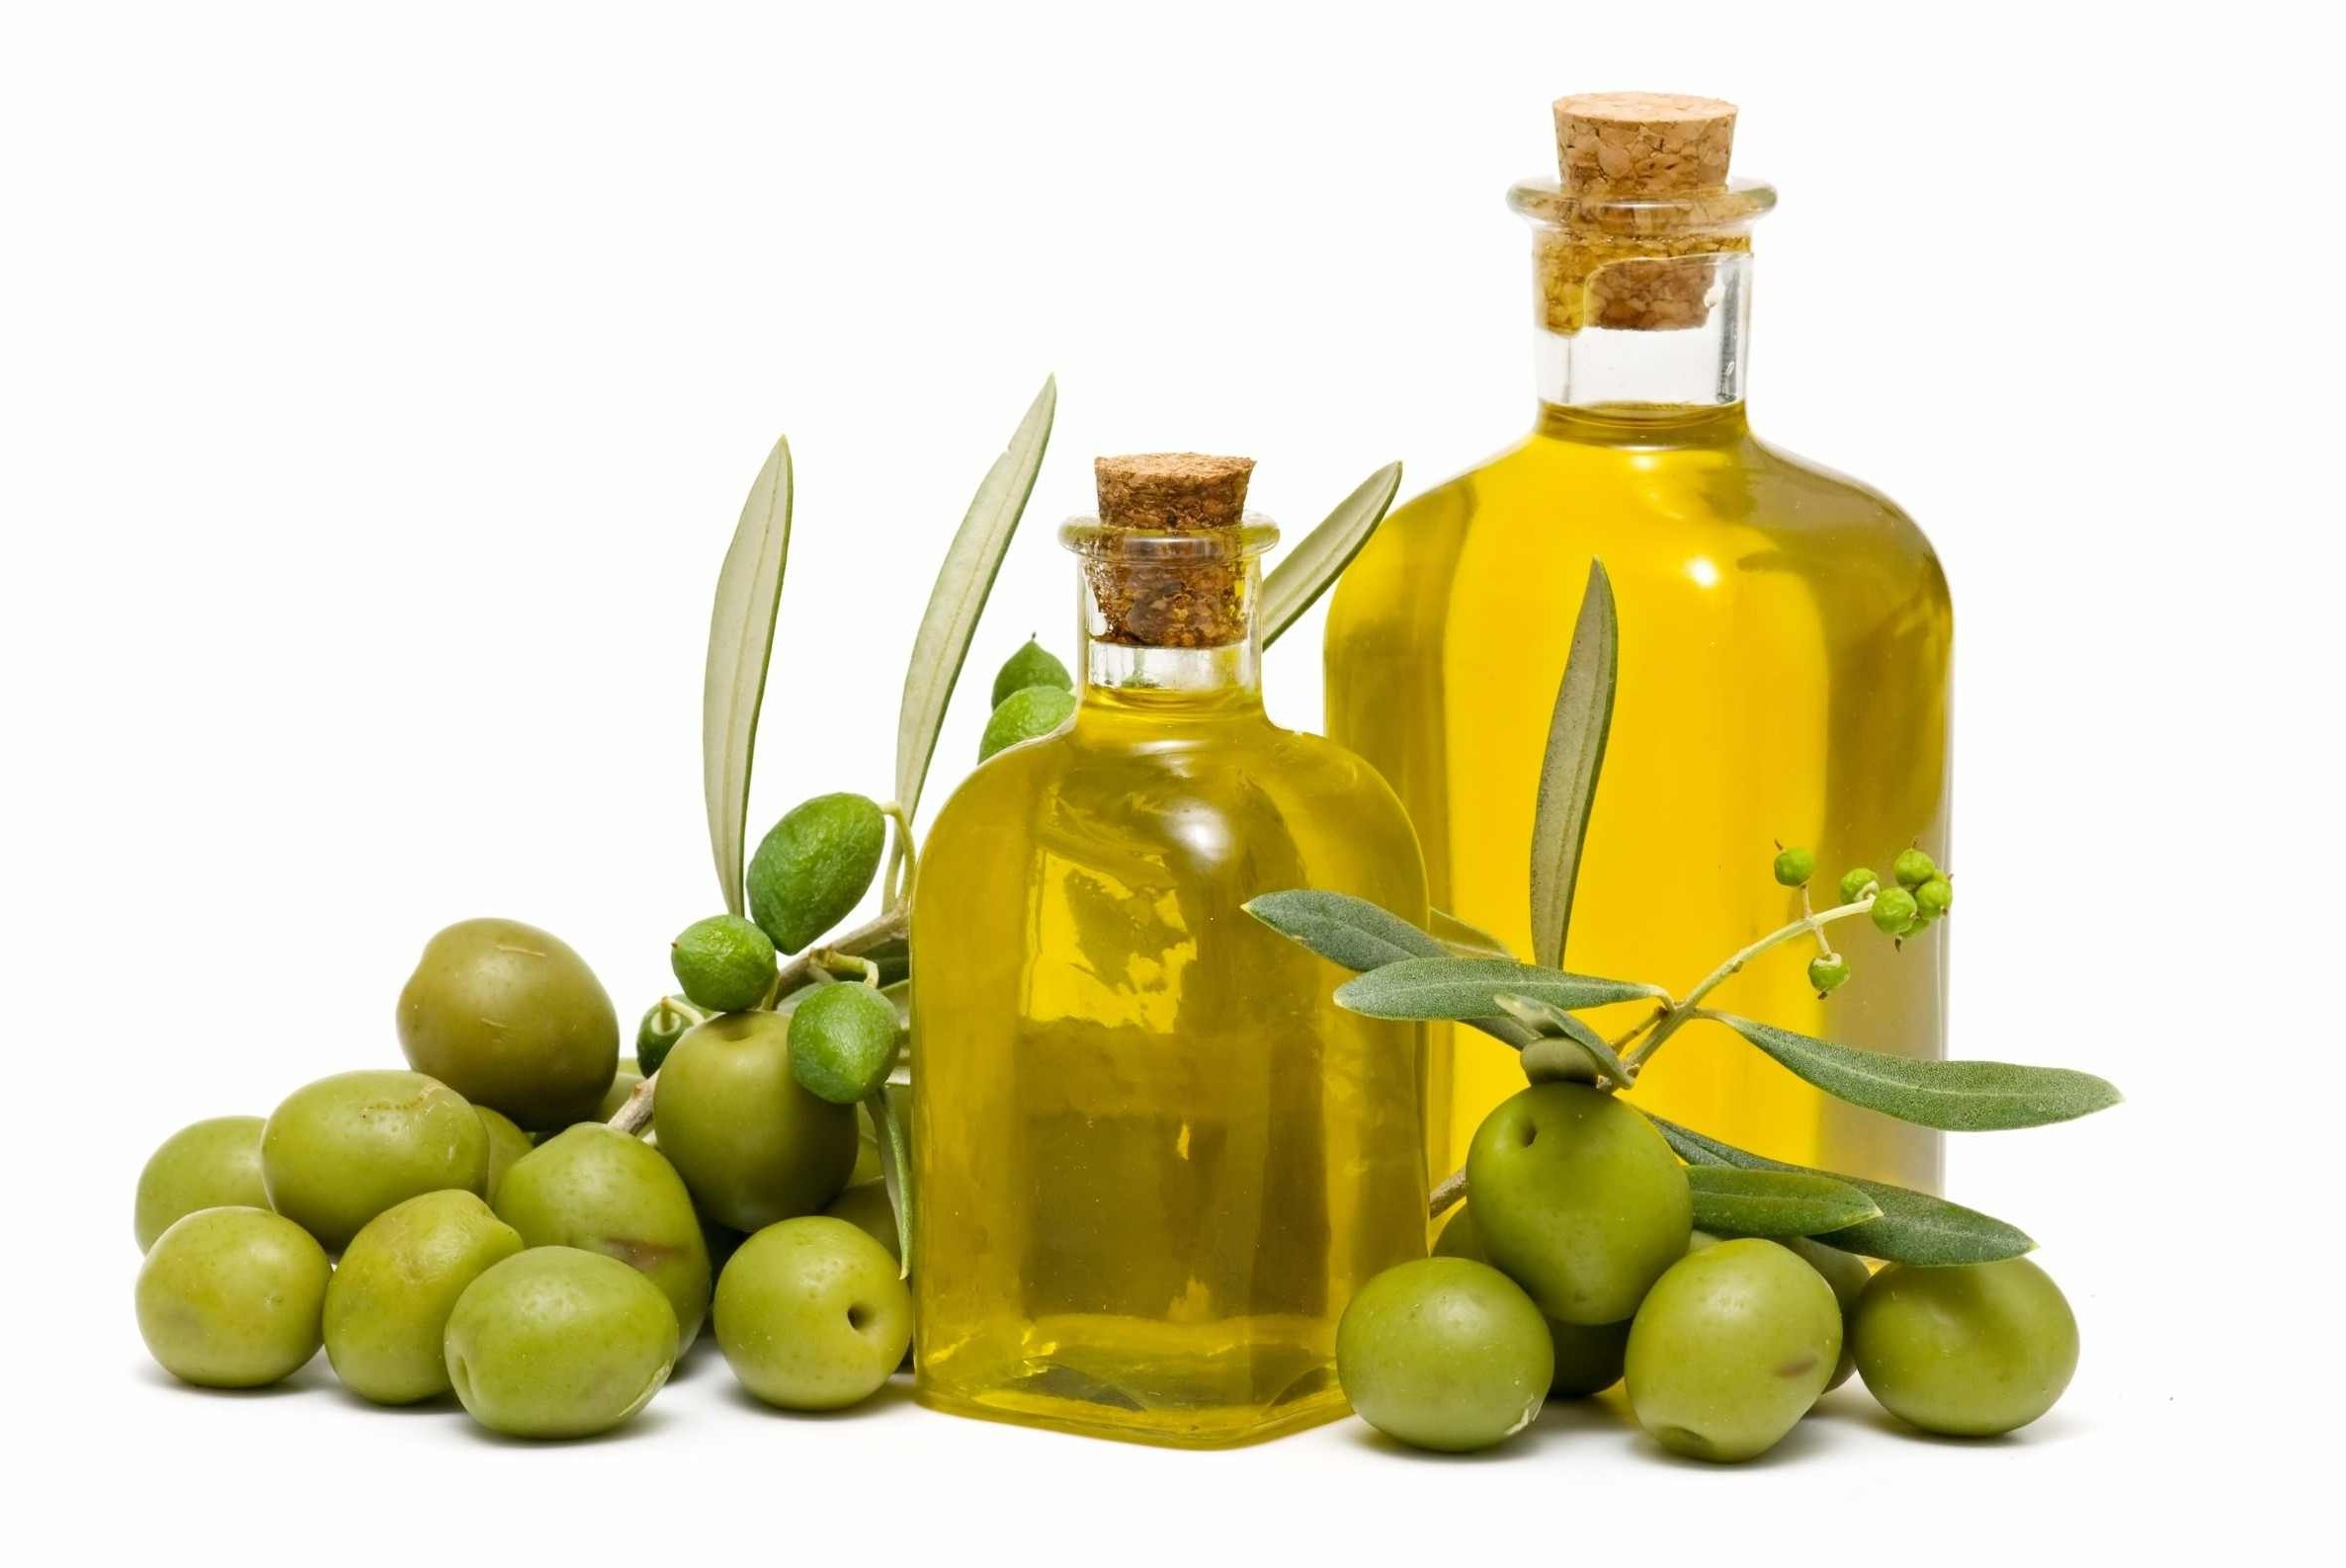 How To Clean Your Face With Olive Oil?